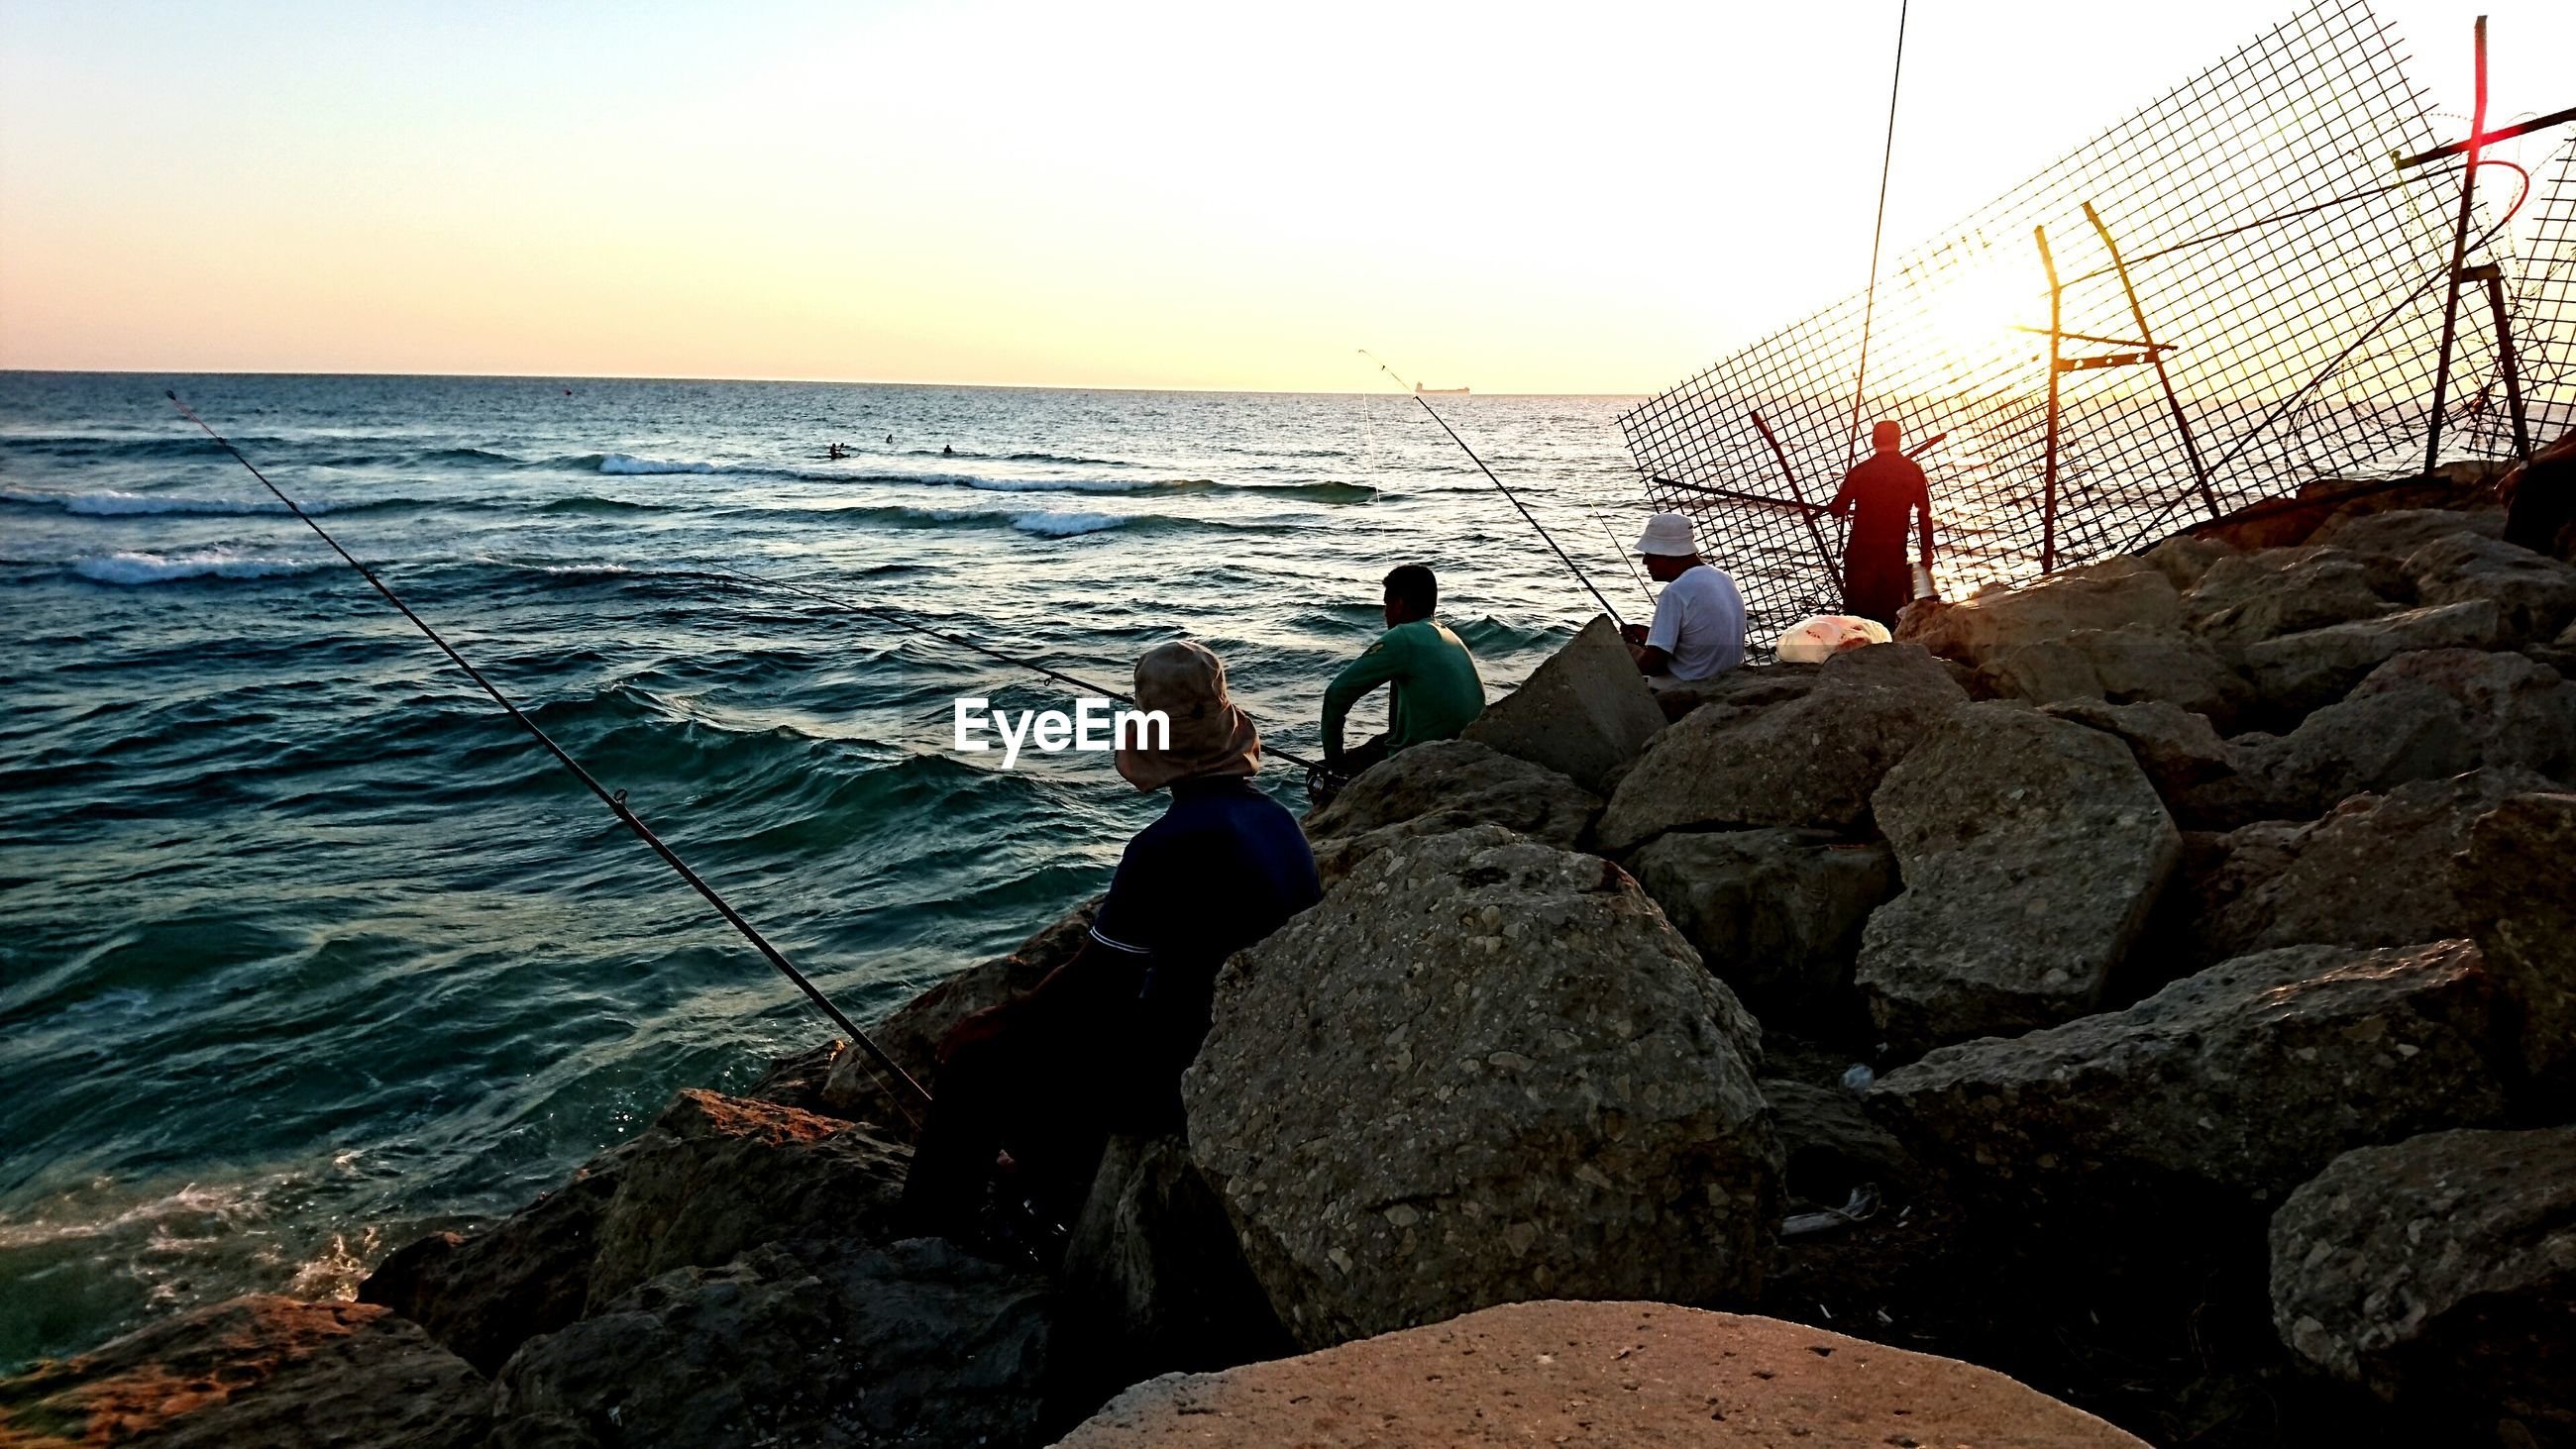 People fishing at sea shore against clear sky